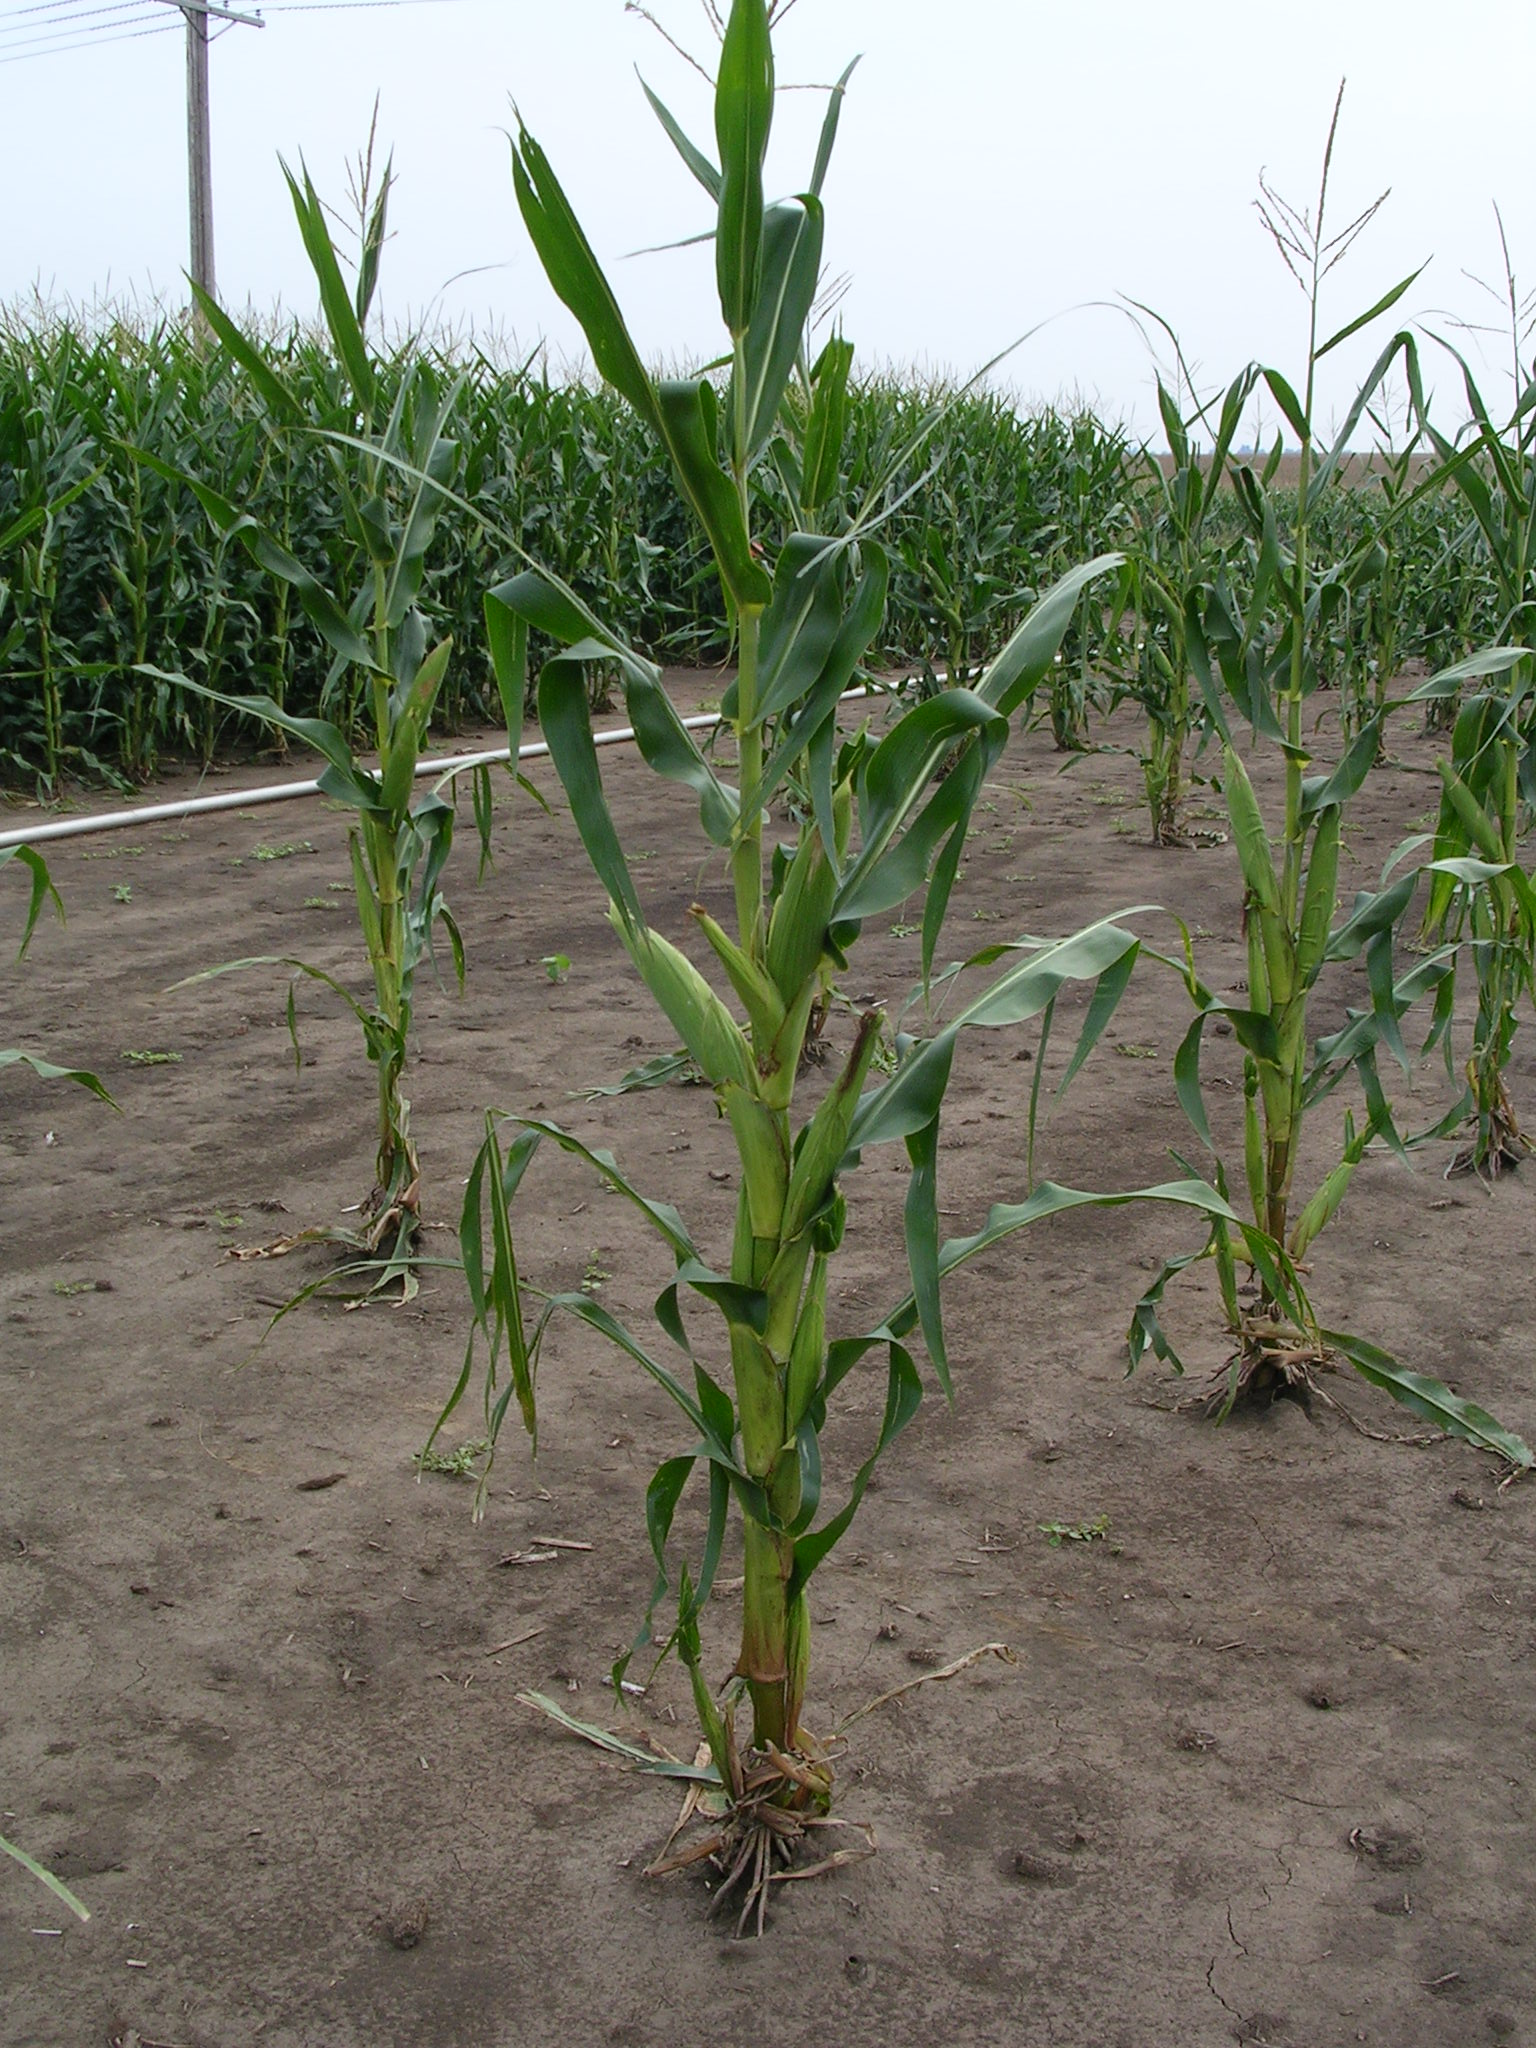 Plants Low Light Early Season Light Quality Affects Corn Growth And Yield